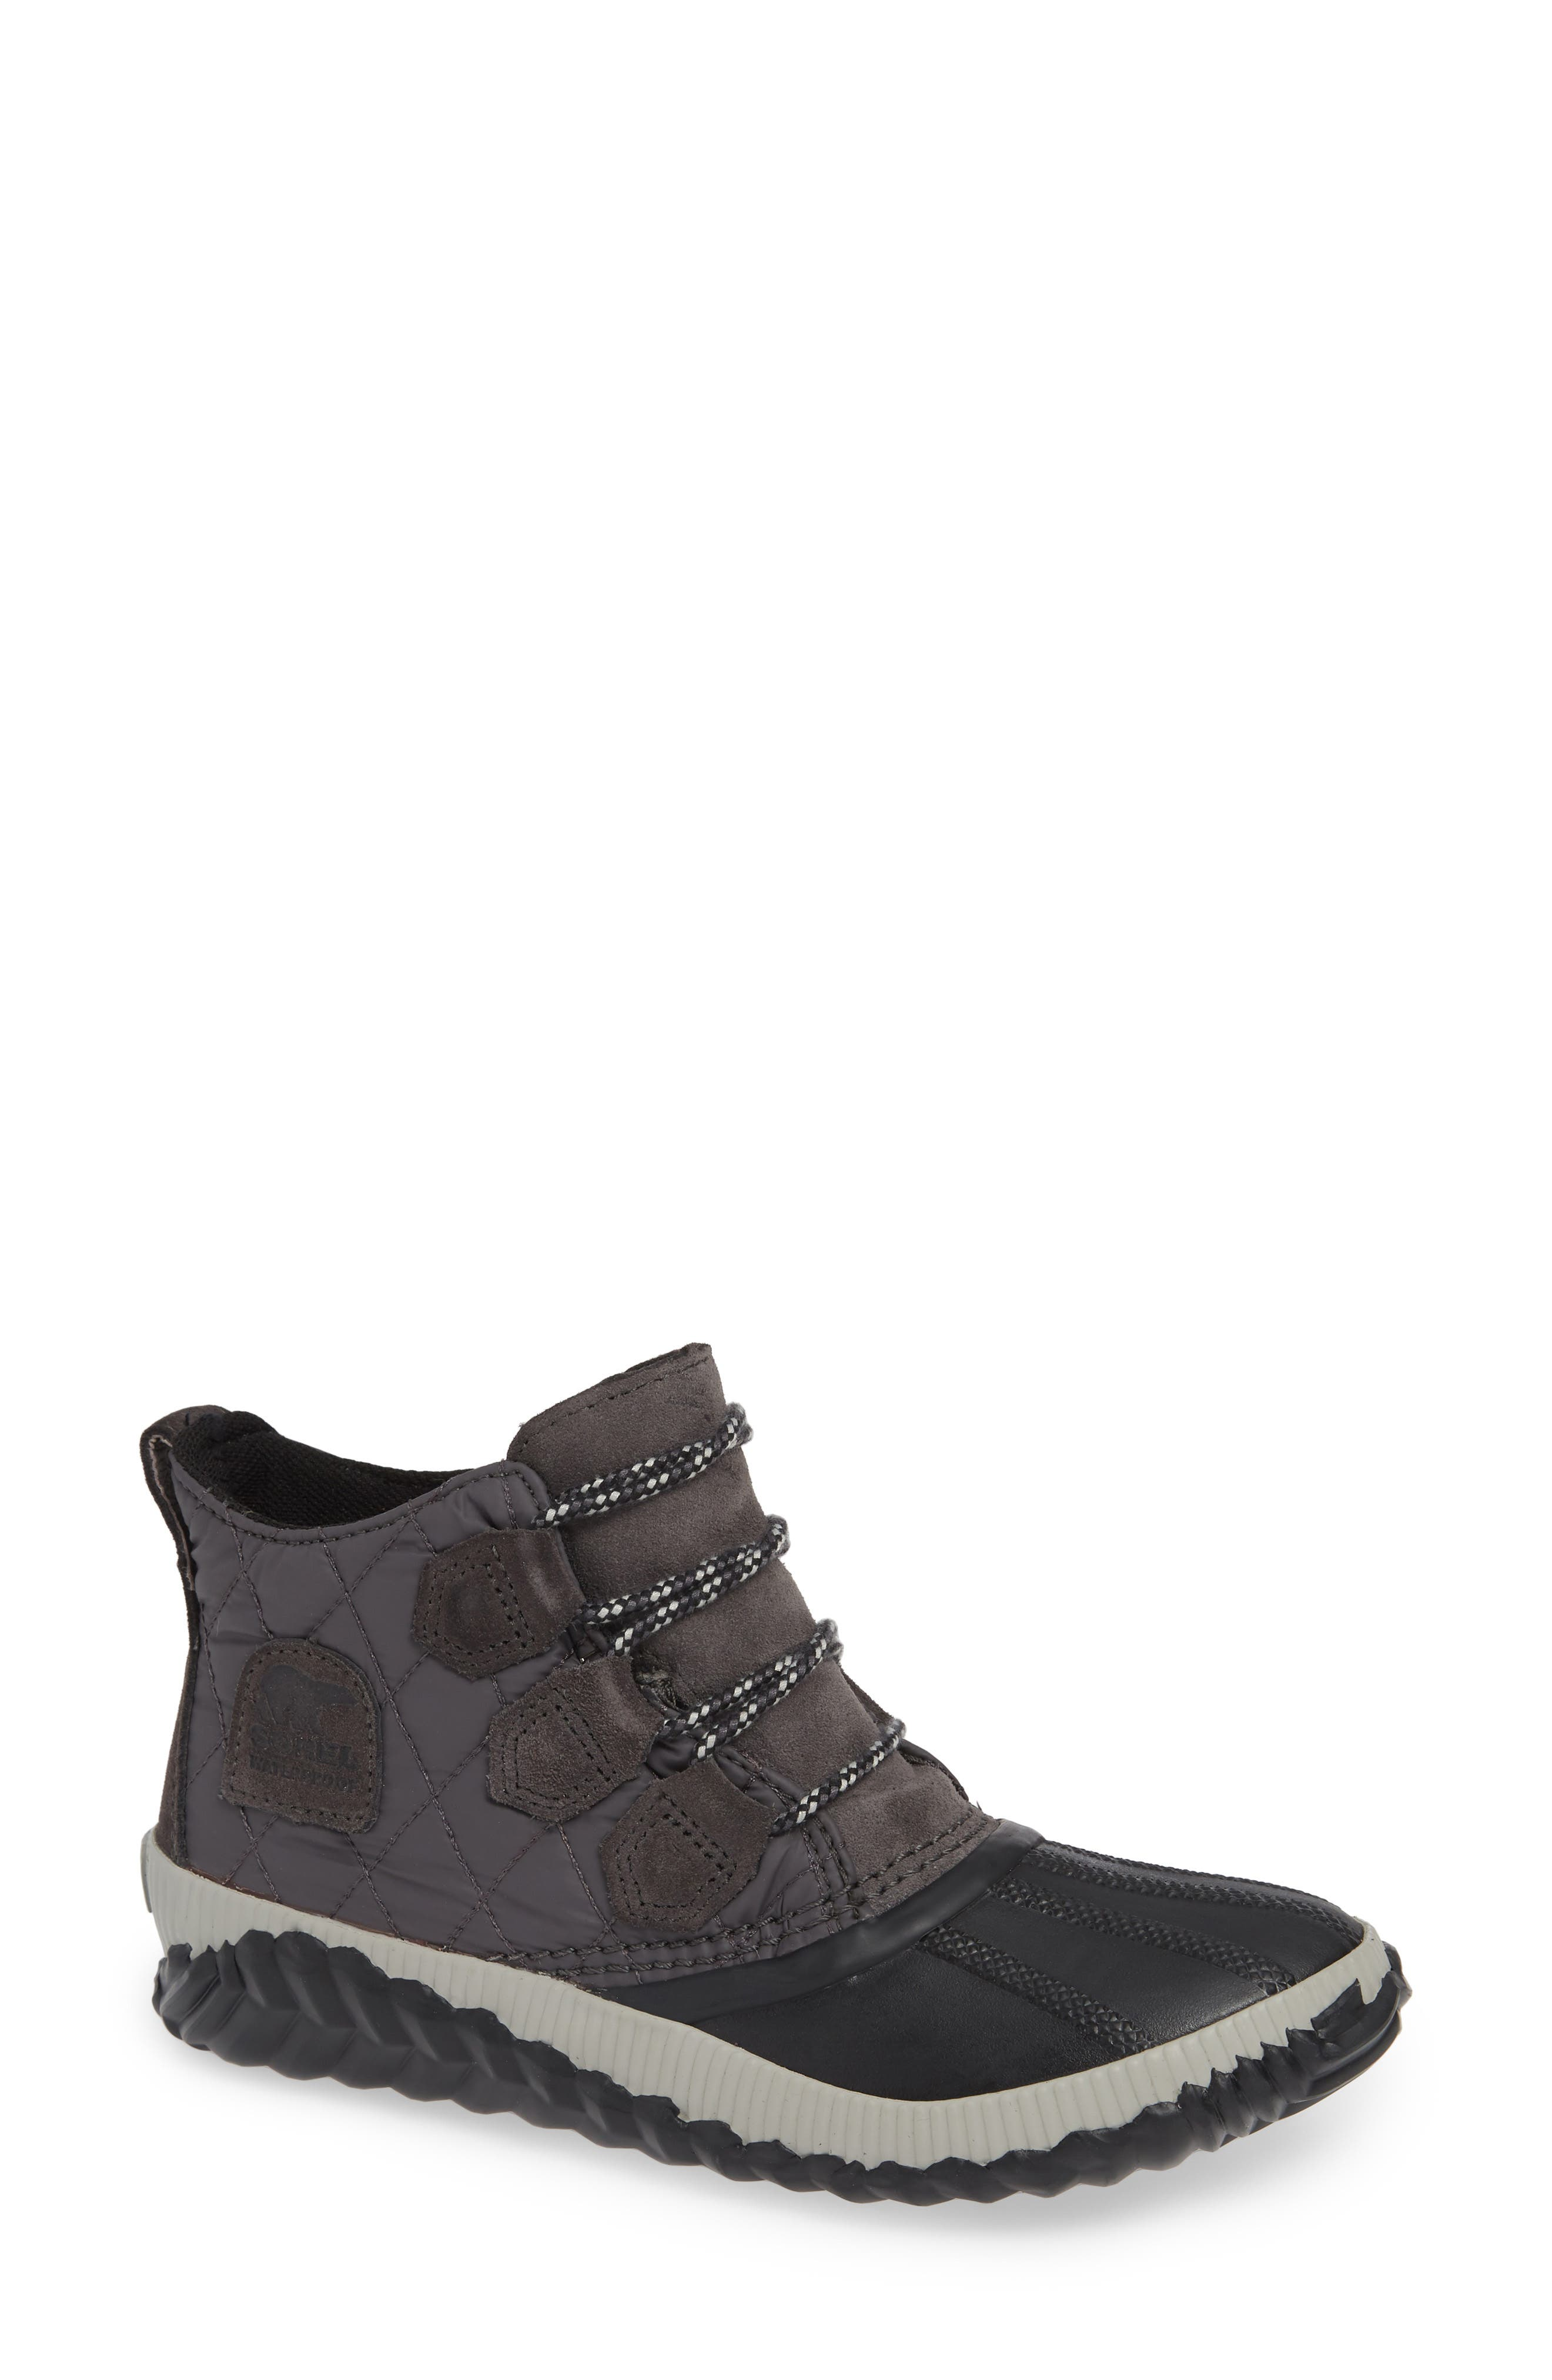 Sorel Out N About Plus Camp Waterproof Bootie- Green